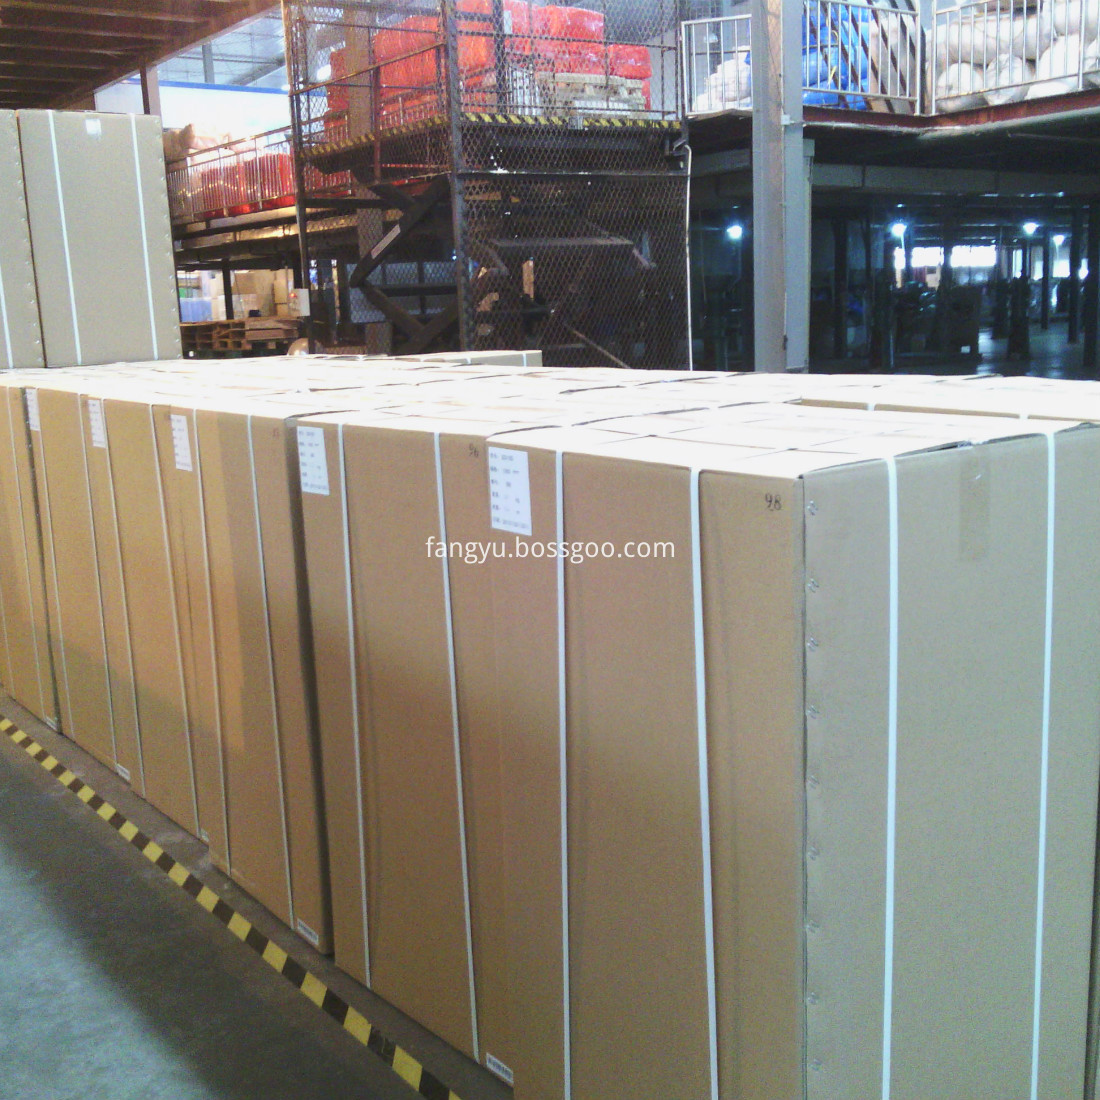 Packing of vacuum insulation panel for refrigerator and cooler box